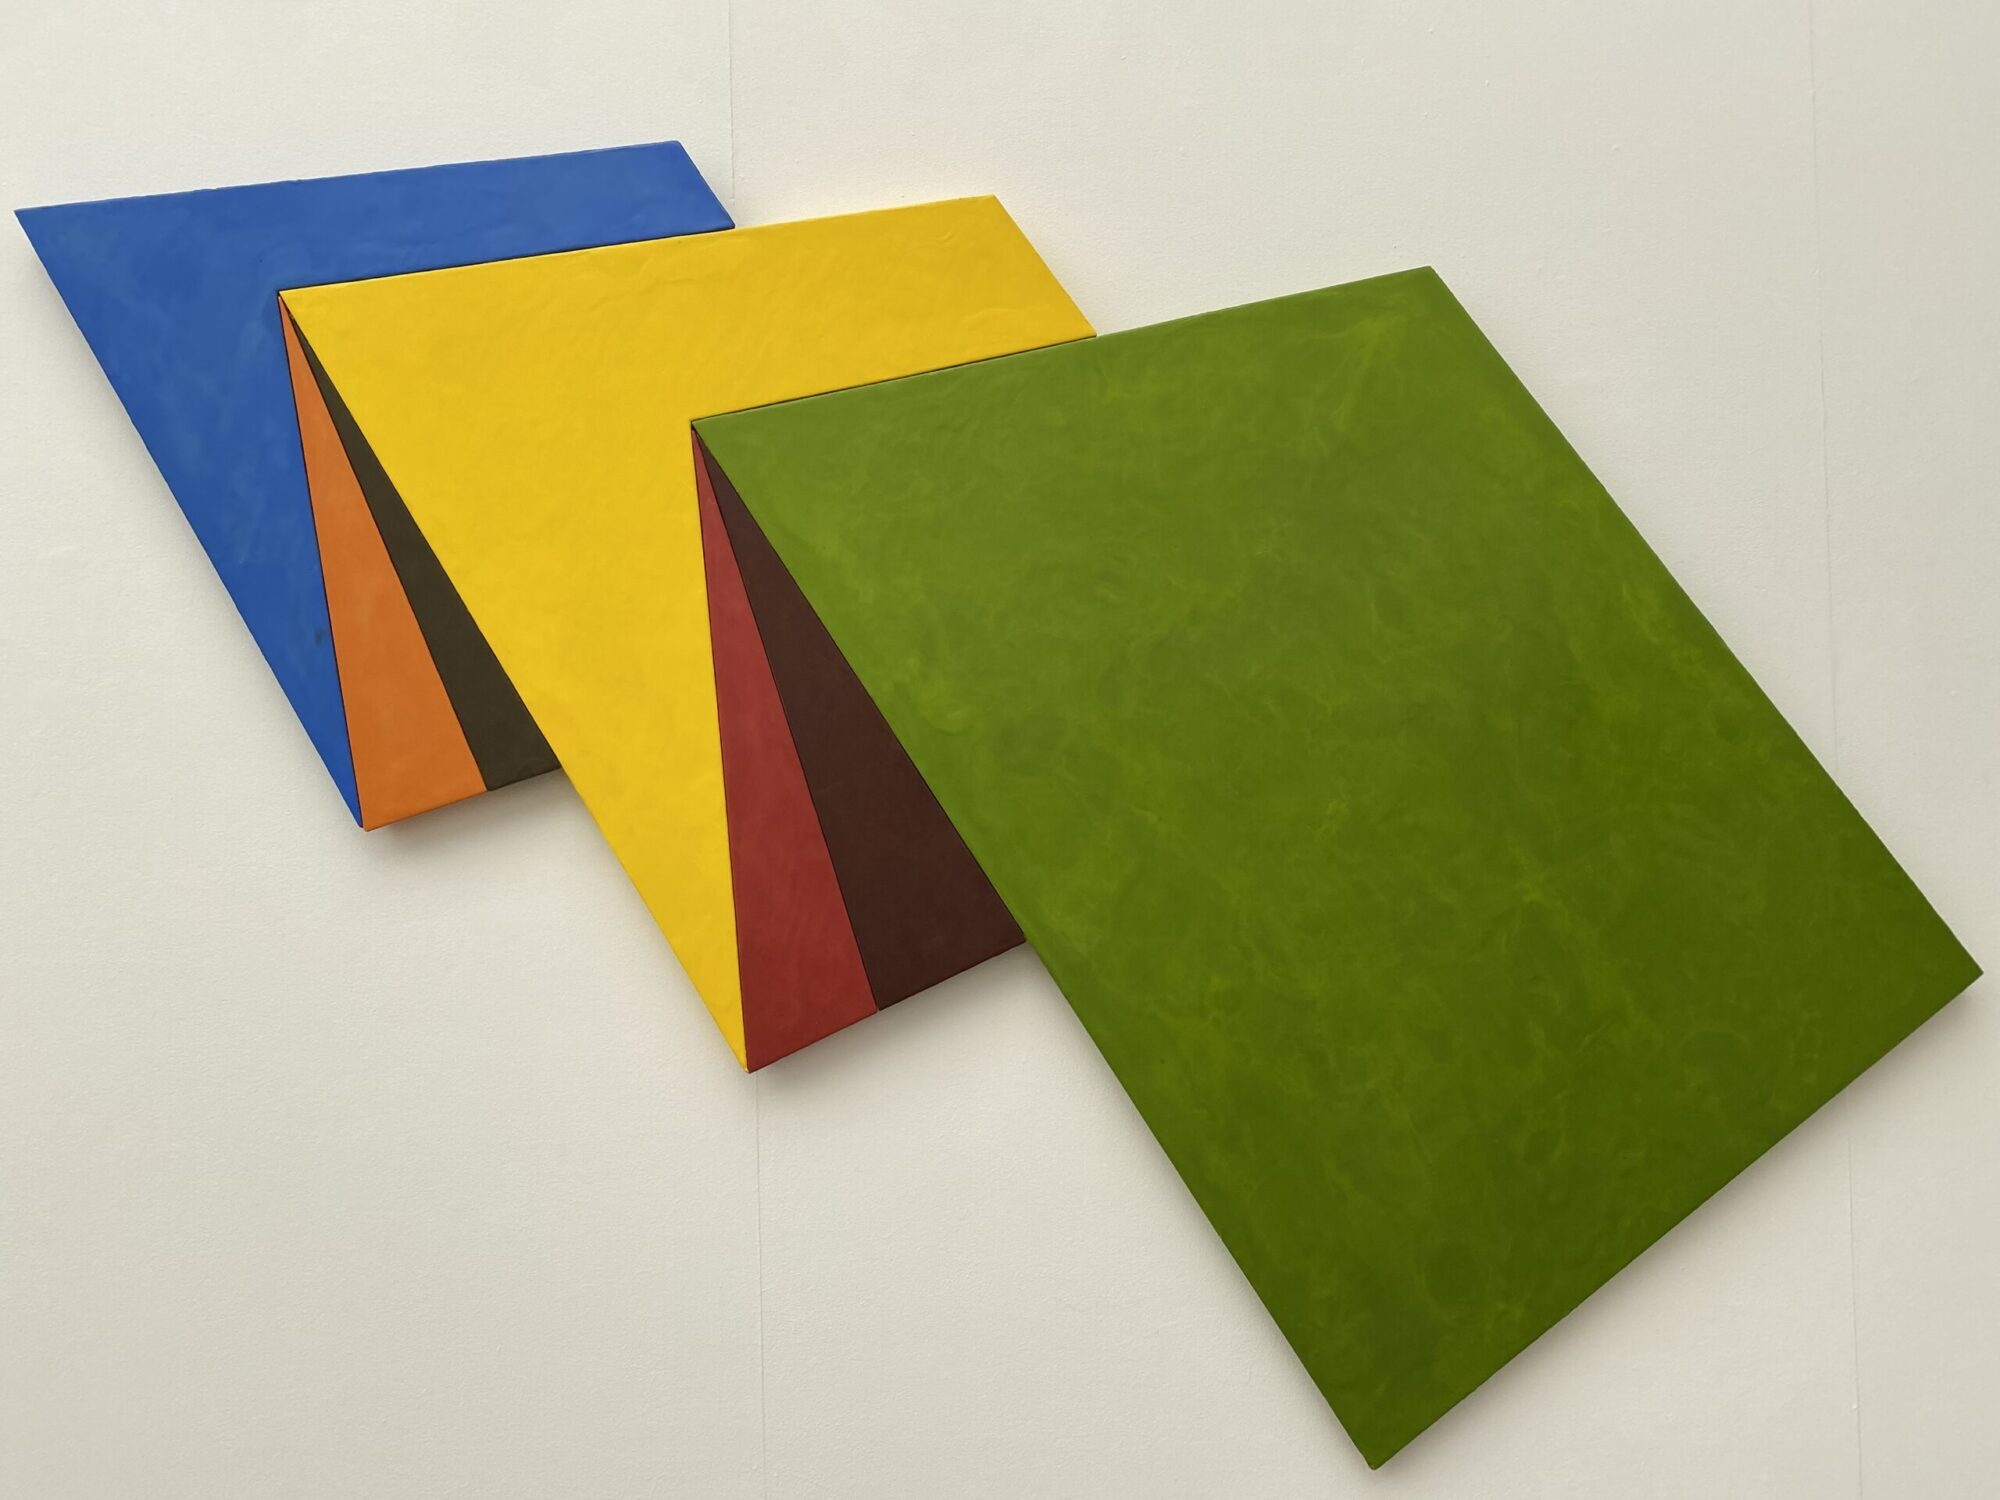 Image of Ronald Davis' art piece titled Five Panel Wave, 1996, encaustic on birch plywood, 57 by 82.5 inches